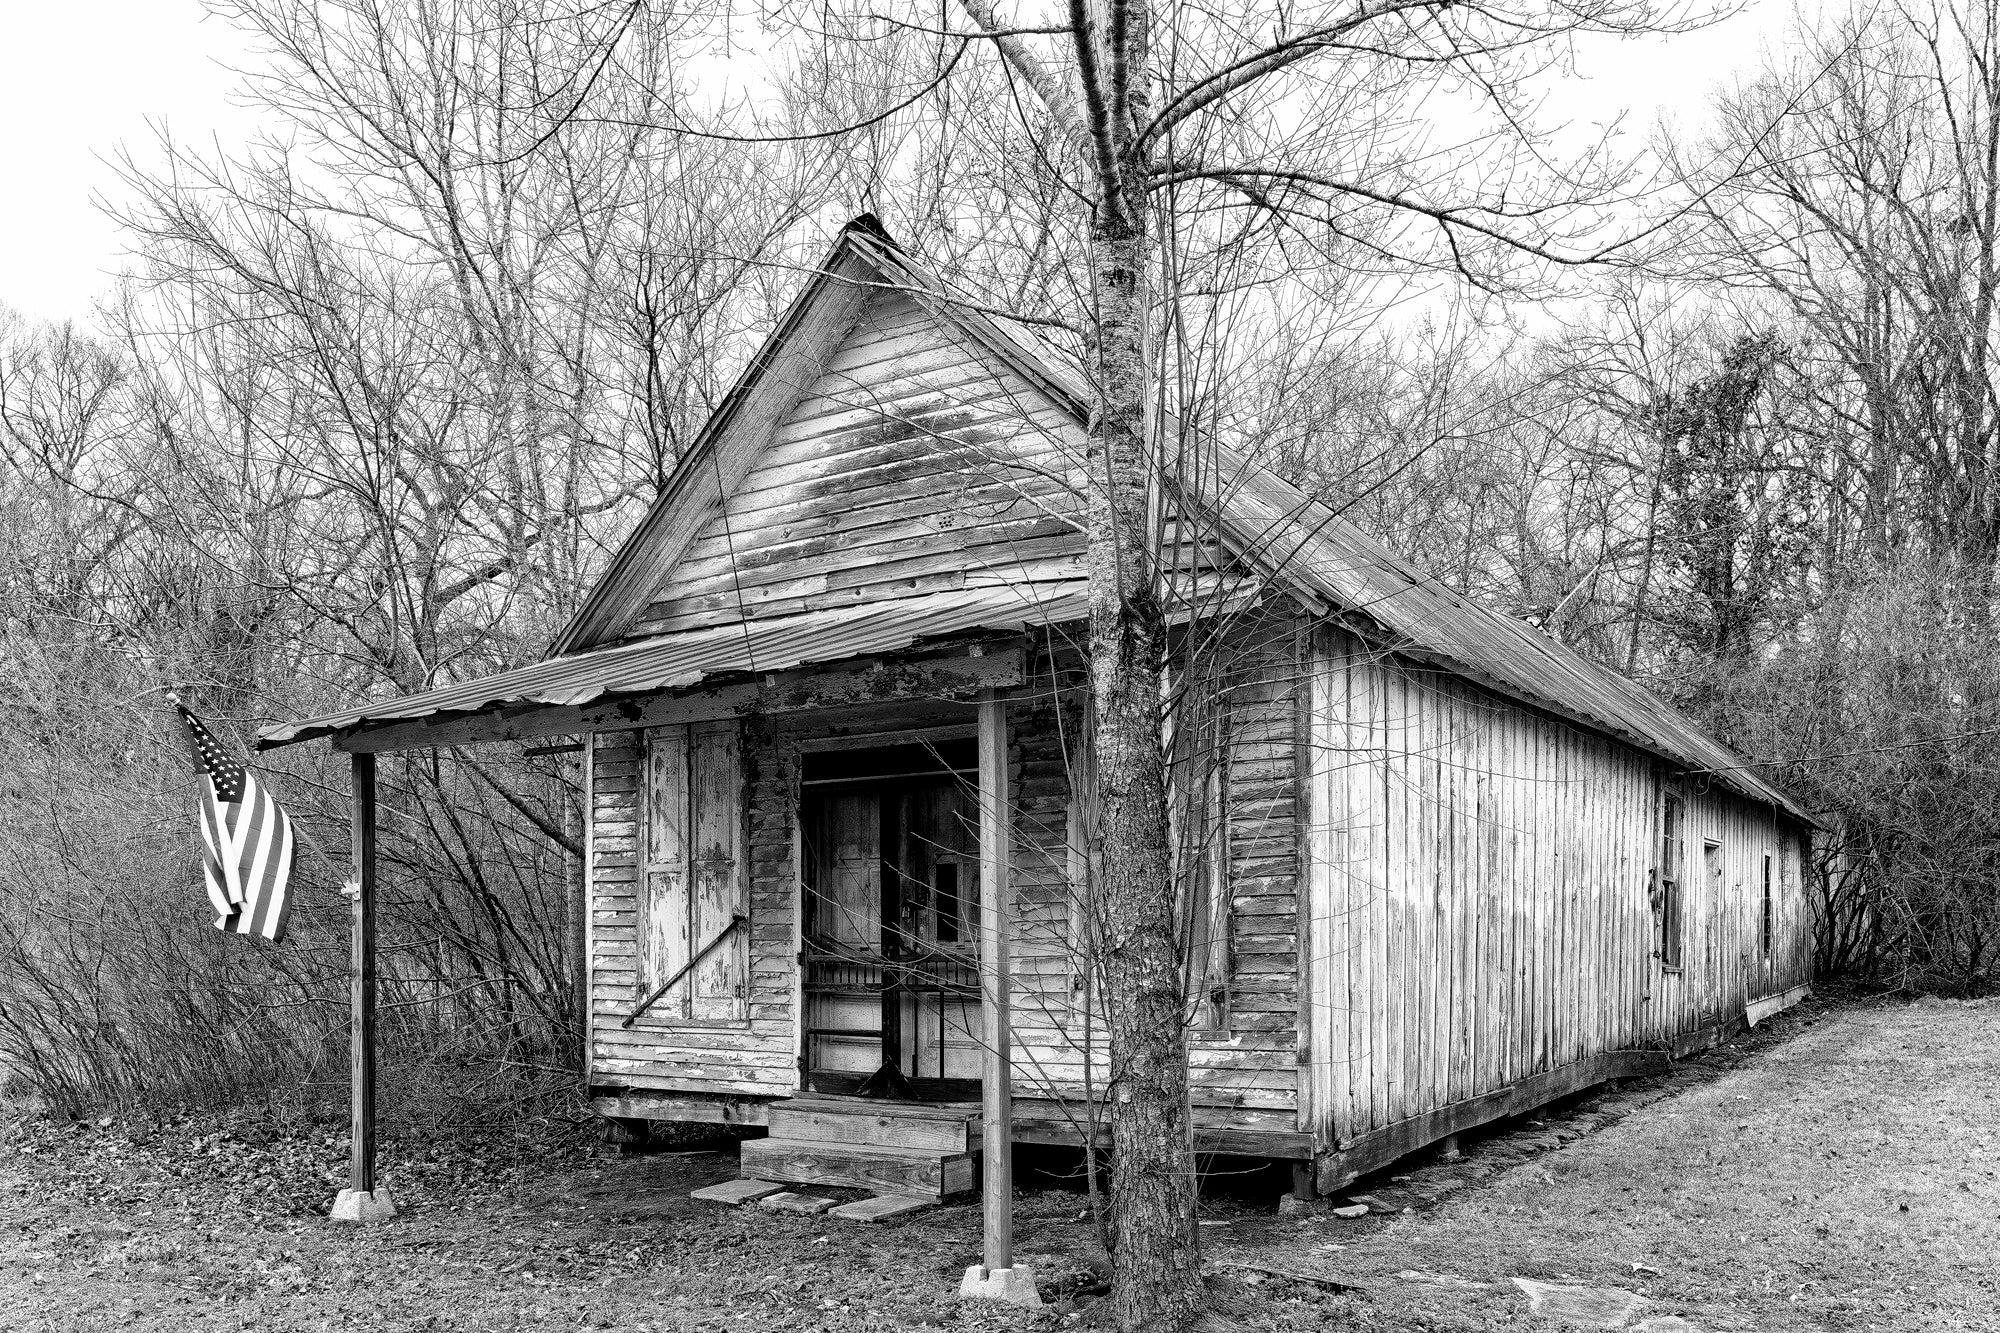 Abandoned Old Country Store: Black and White Photograph by Keith Dotson. Buy a fine art print.